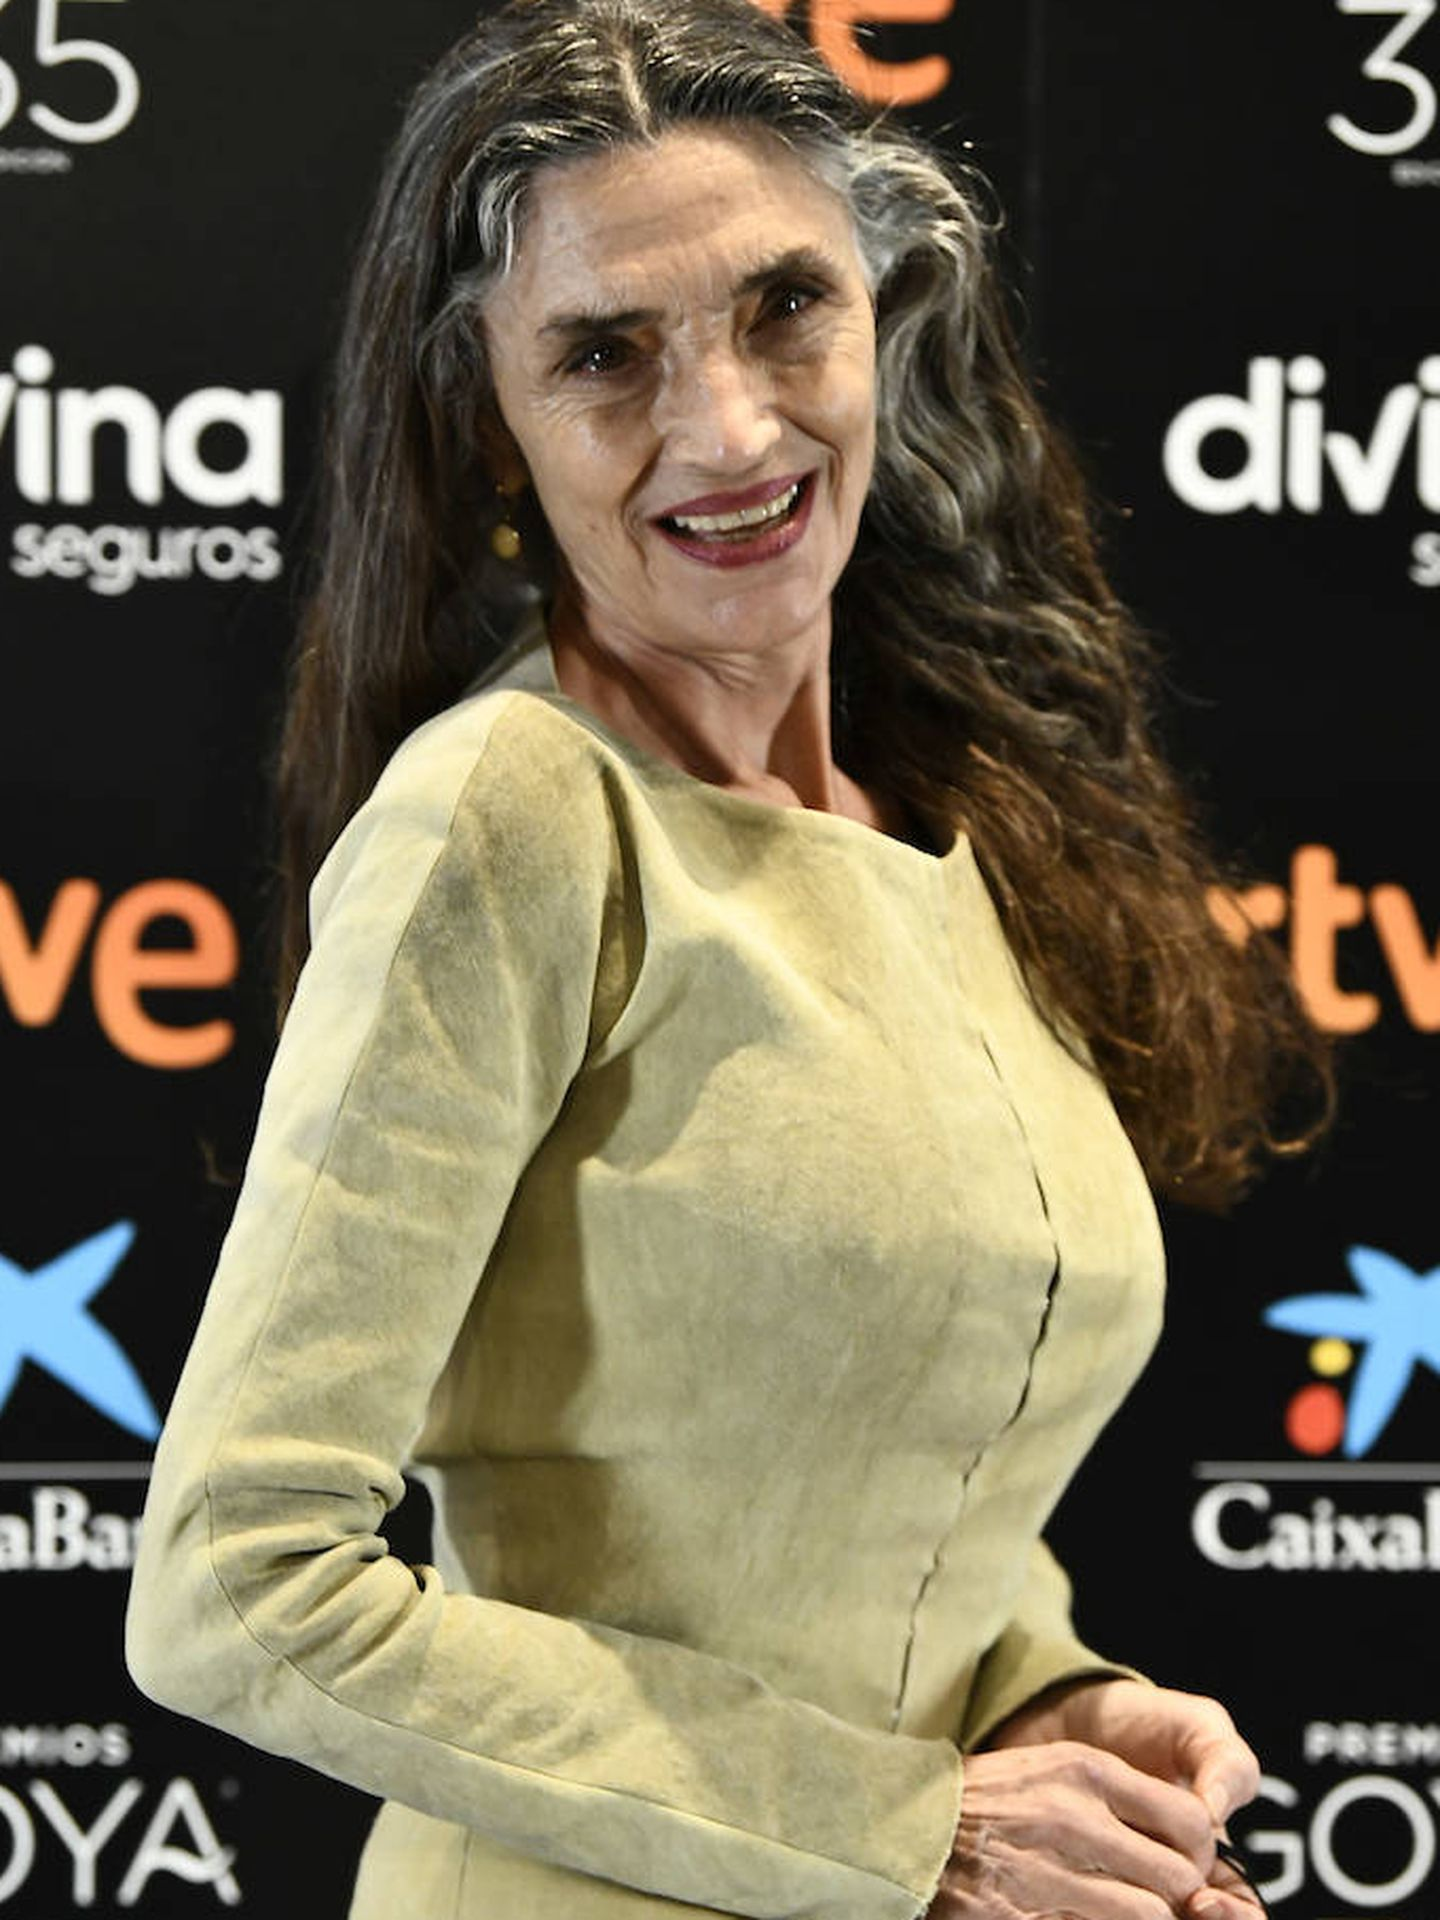 Ángela Molina. (Limited Pictures)